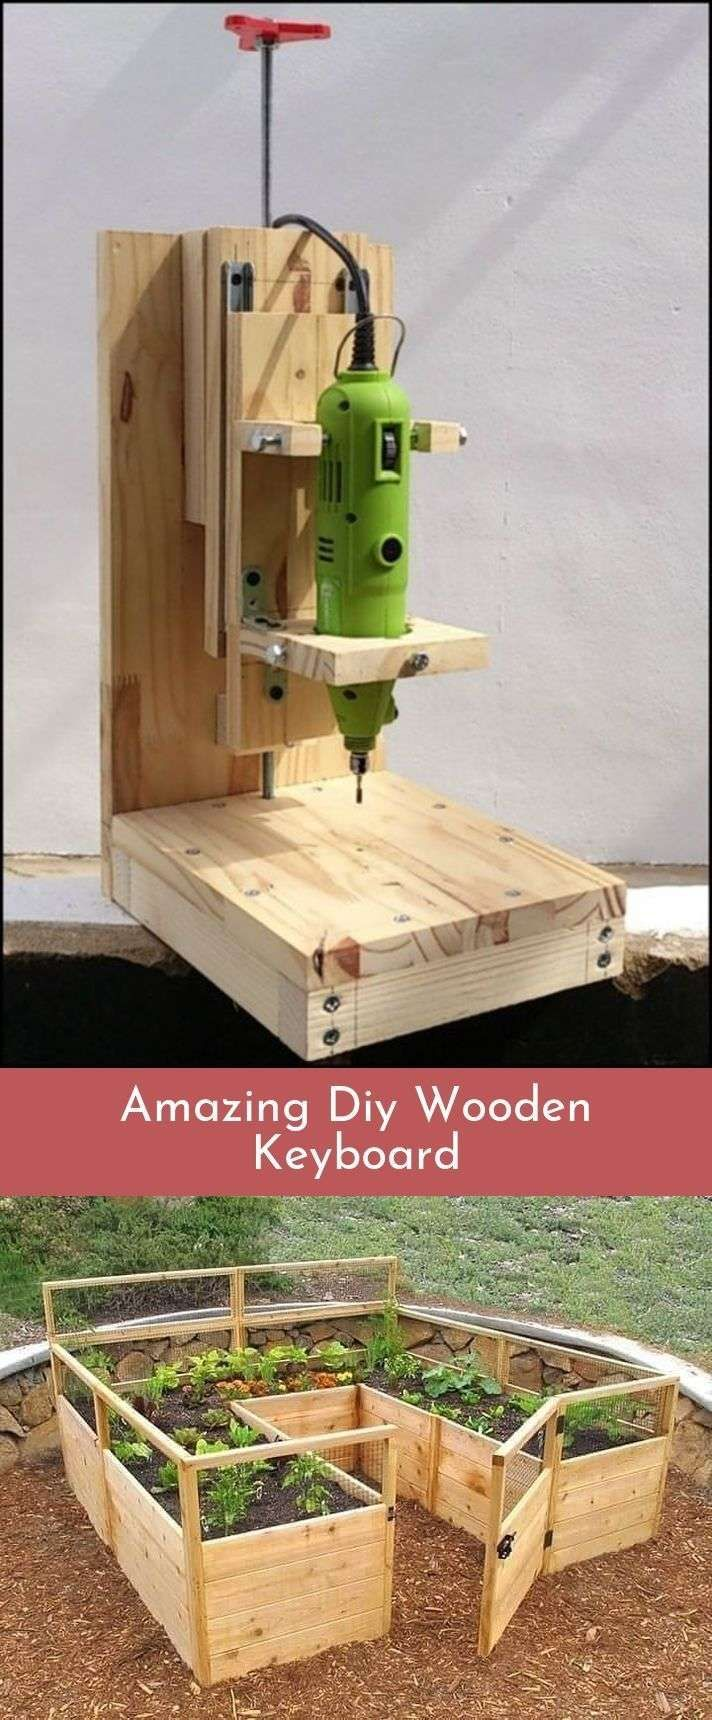 Diy Wood Projects For Mom Tools Woodworking Diy Wood Projects